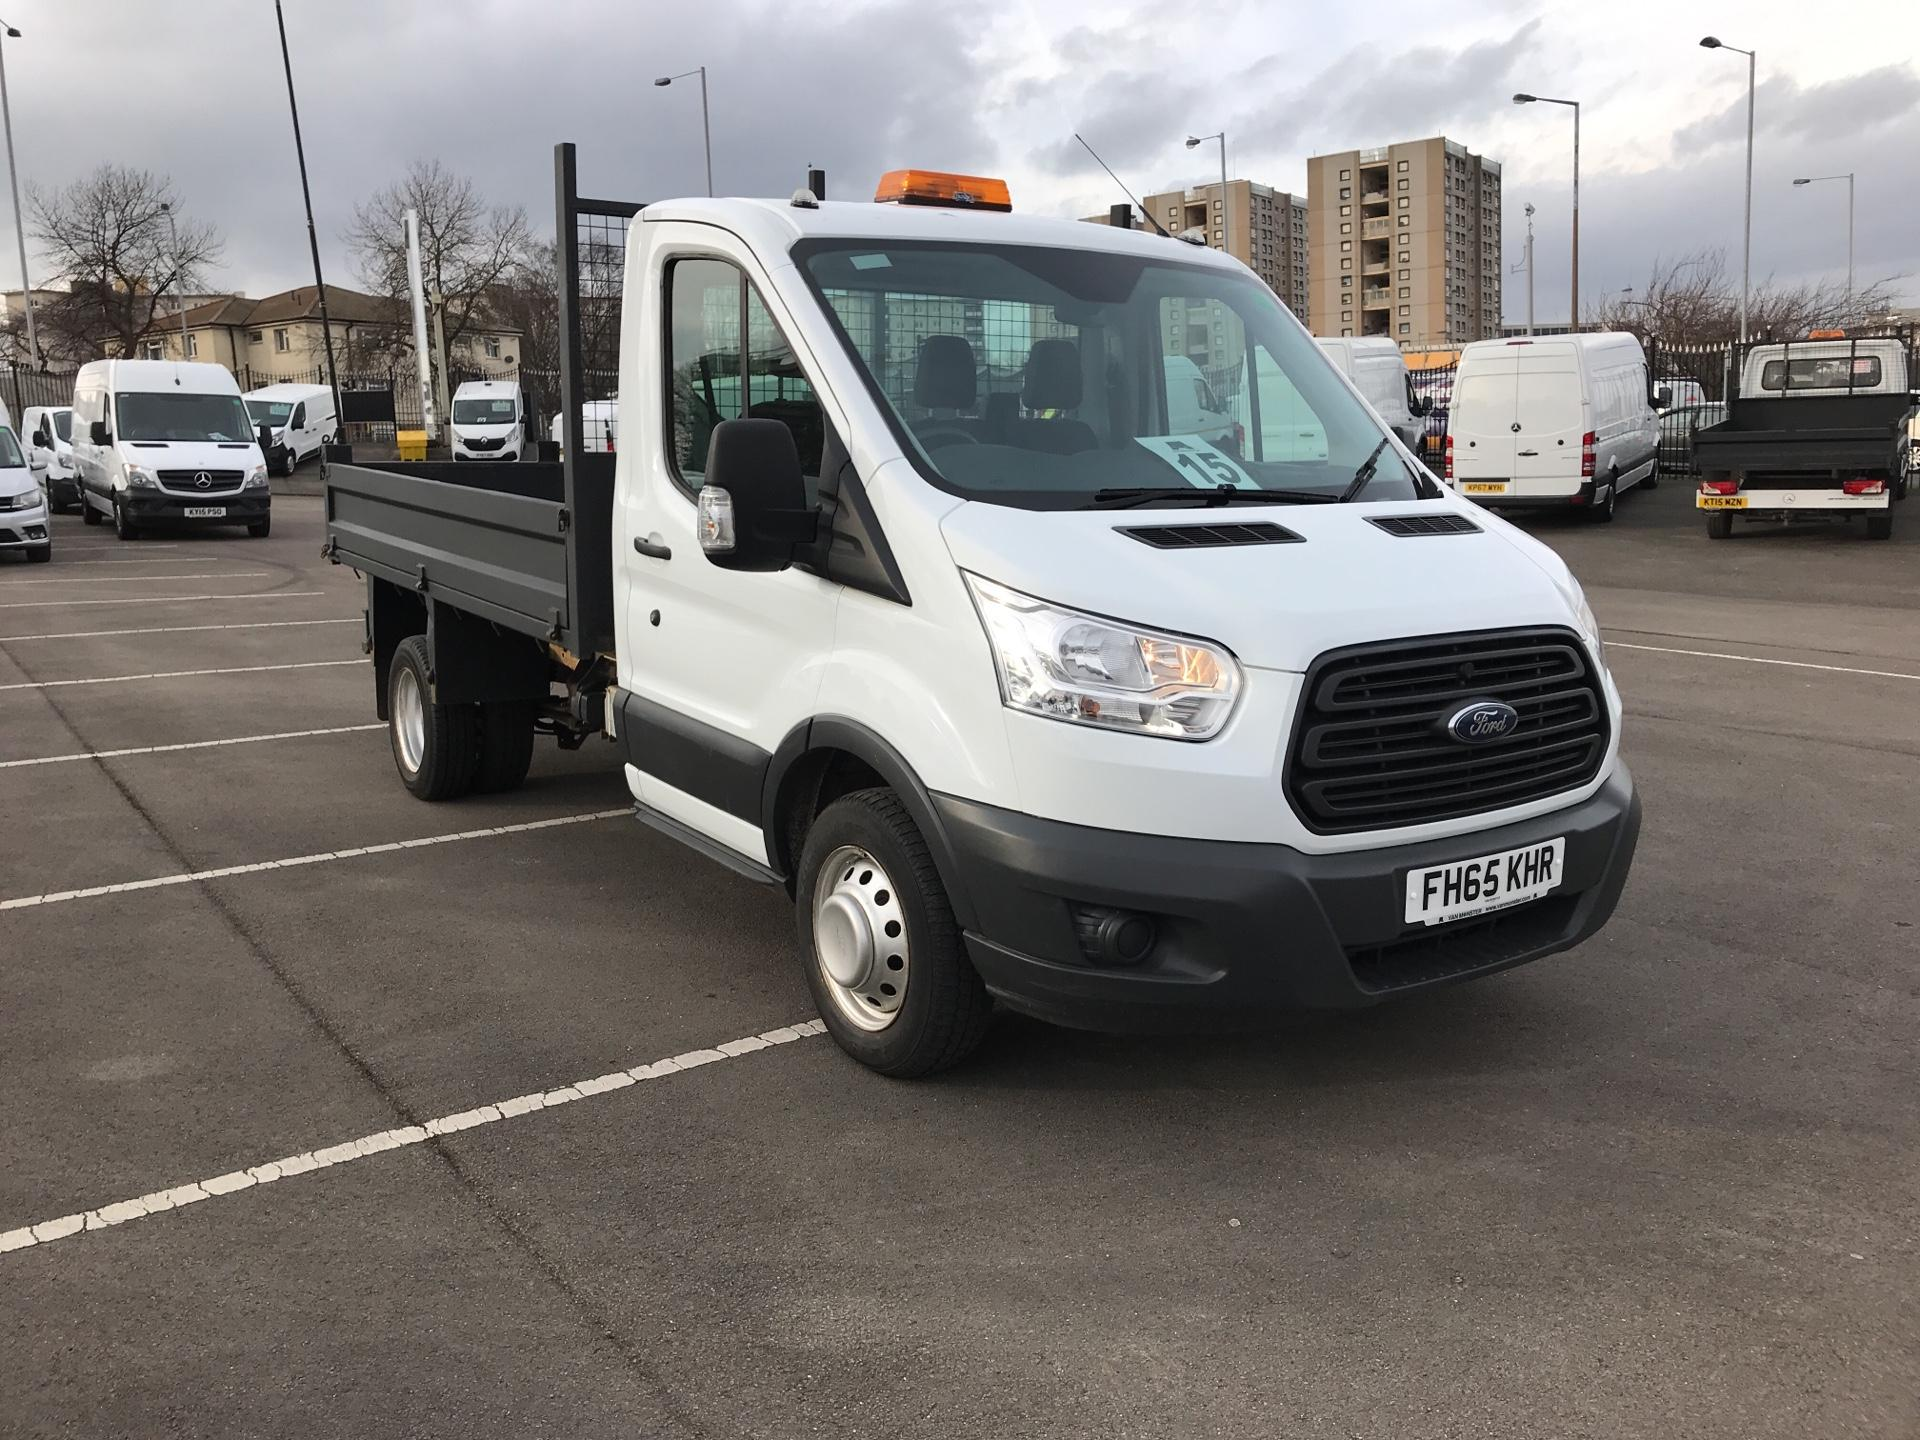 2016 Ford Transit 2.2 Tdci 125Ps SINGLE CAB TIPPER EURO 5 (FH65KHR)